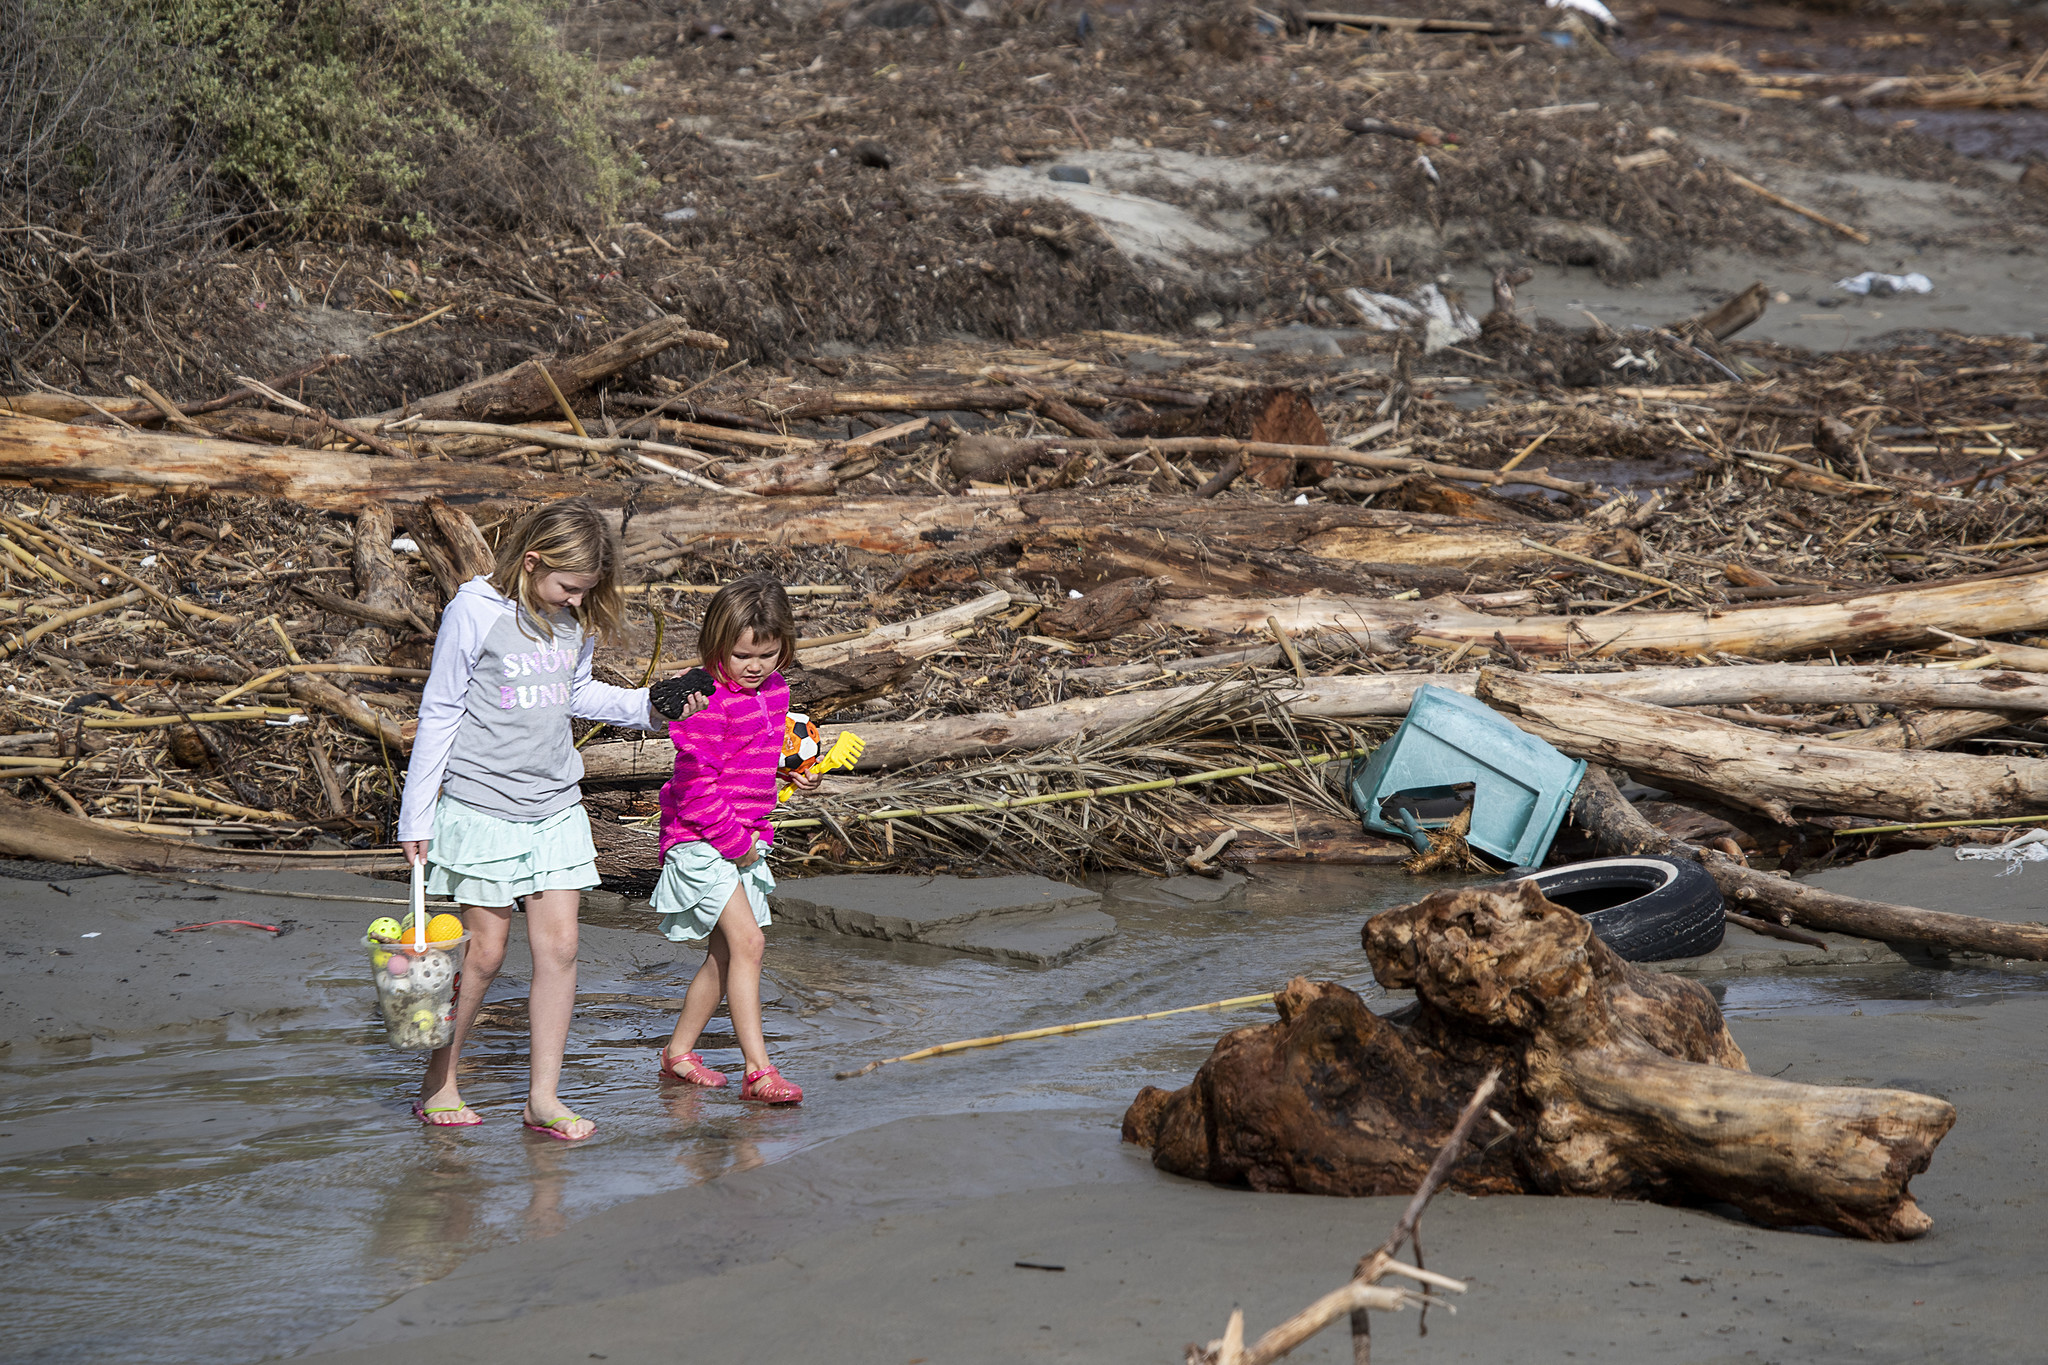 DANA POINT, CALIF. -- FRIDAY, FEBRUARY 15, 2019: Kids gather treasures as they search among storm de